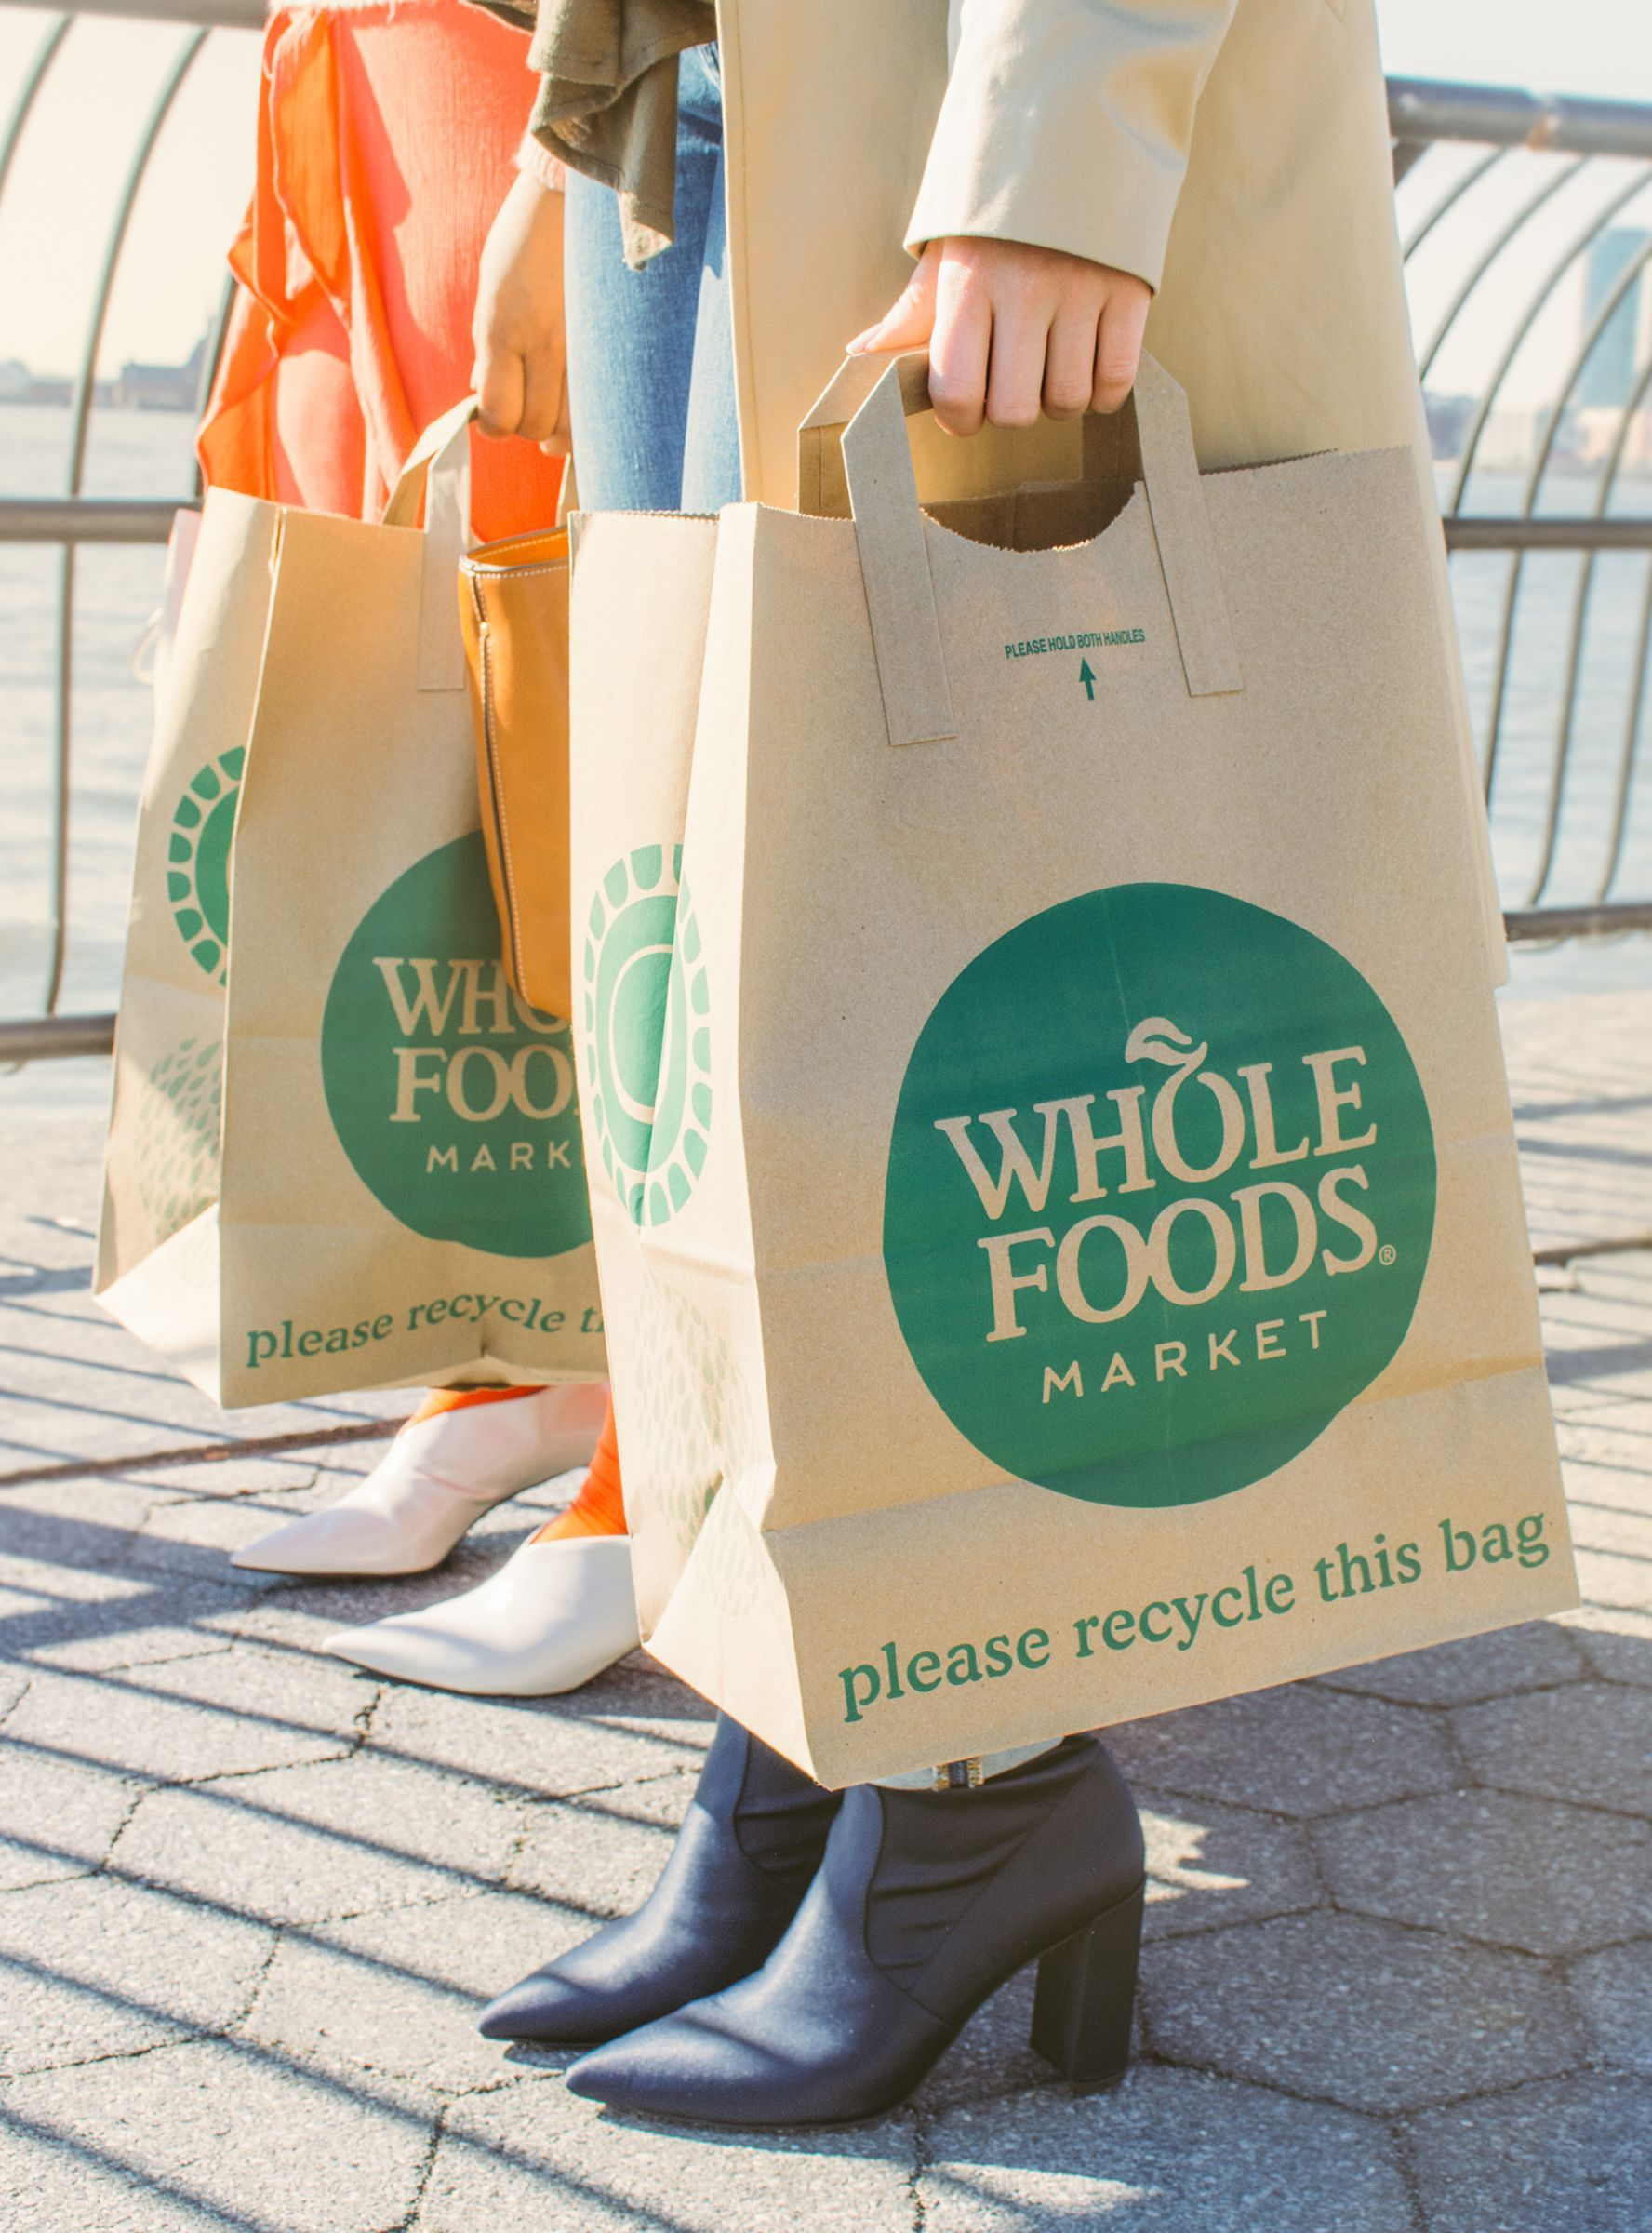 Amazon announced more prime day deals for whole foods